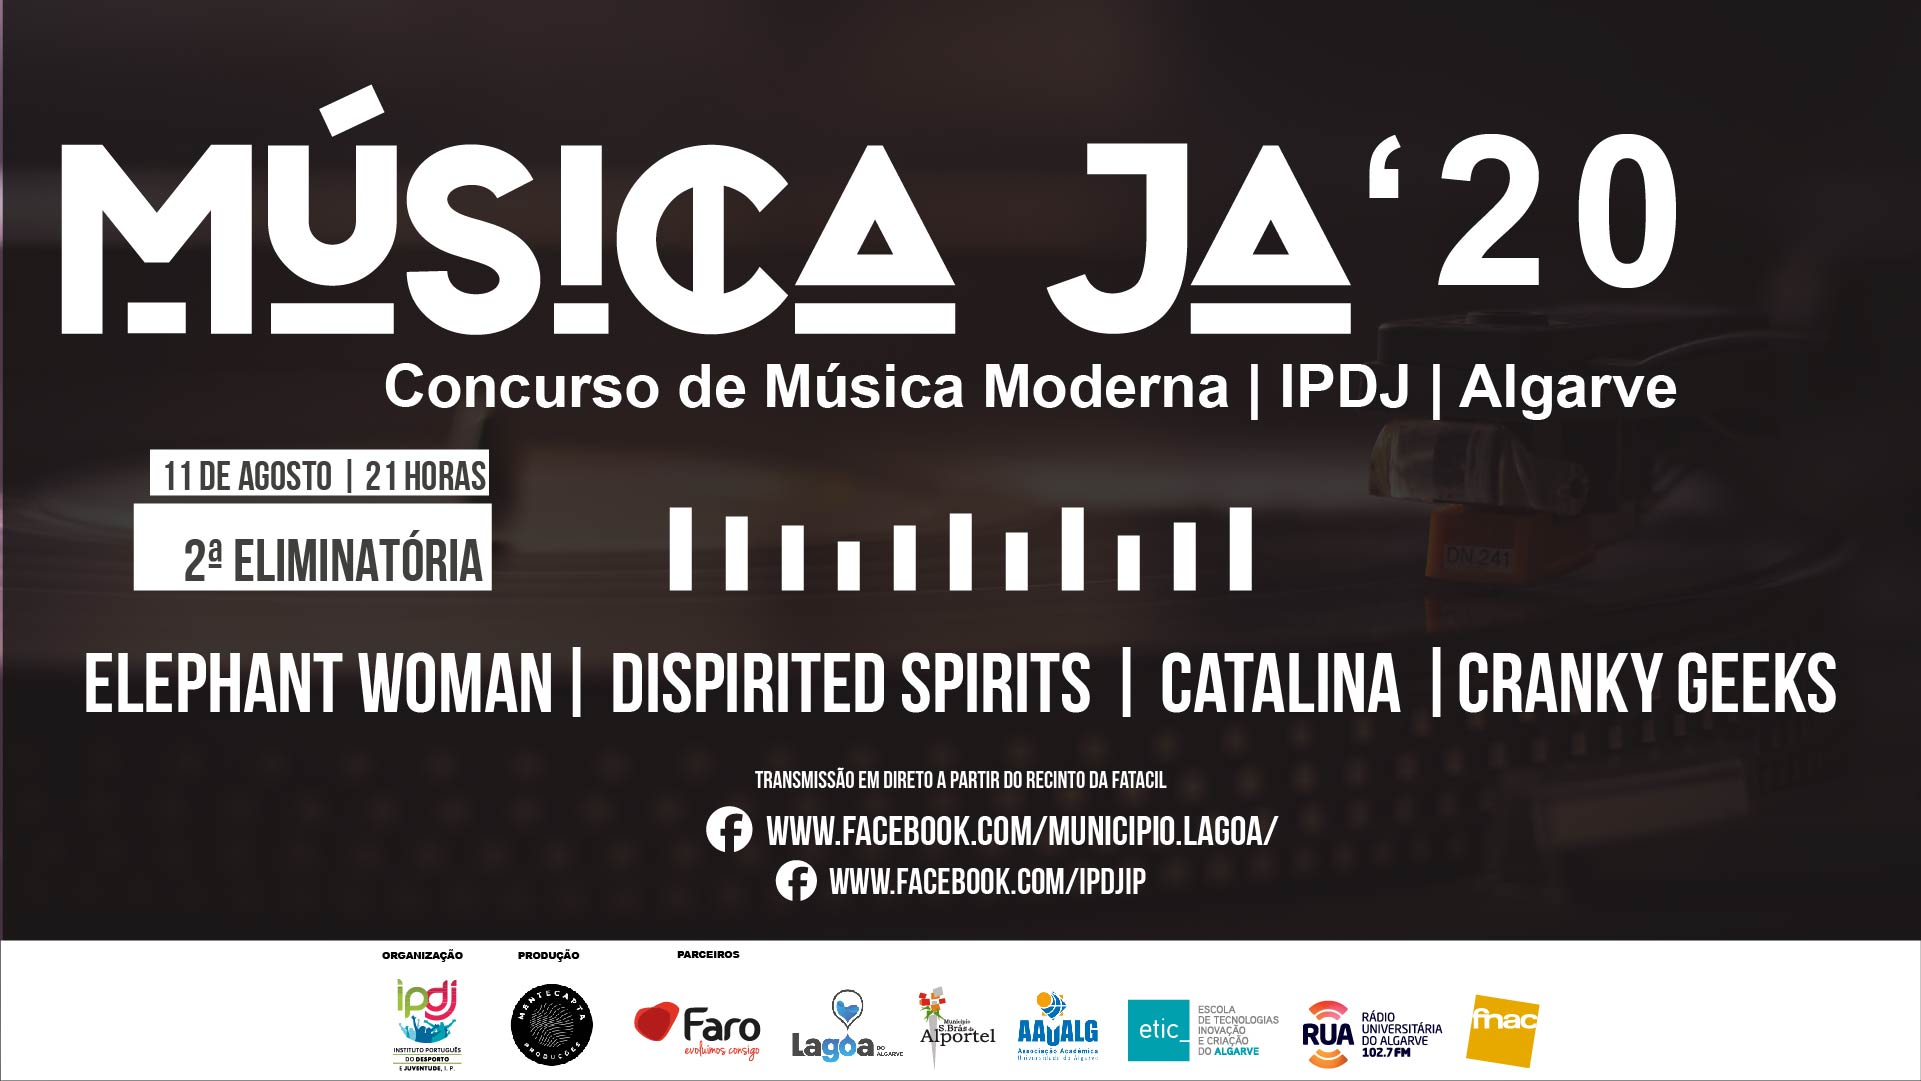 Segunda eliminatória do Música JA 2020 - Concurso de Música Moderna do Algarve